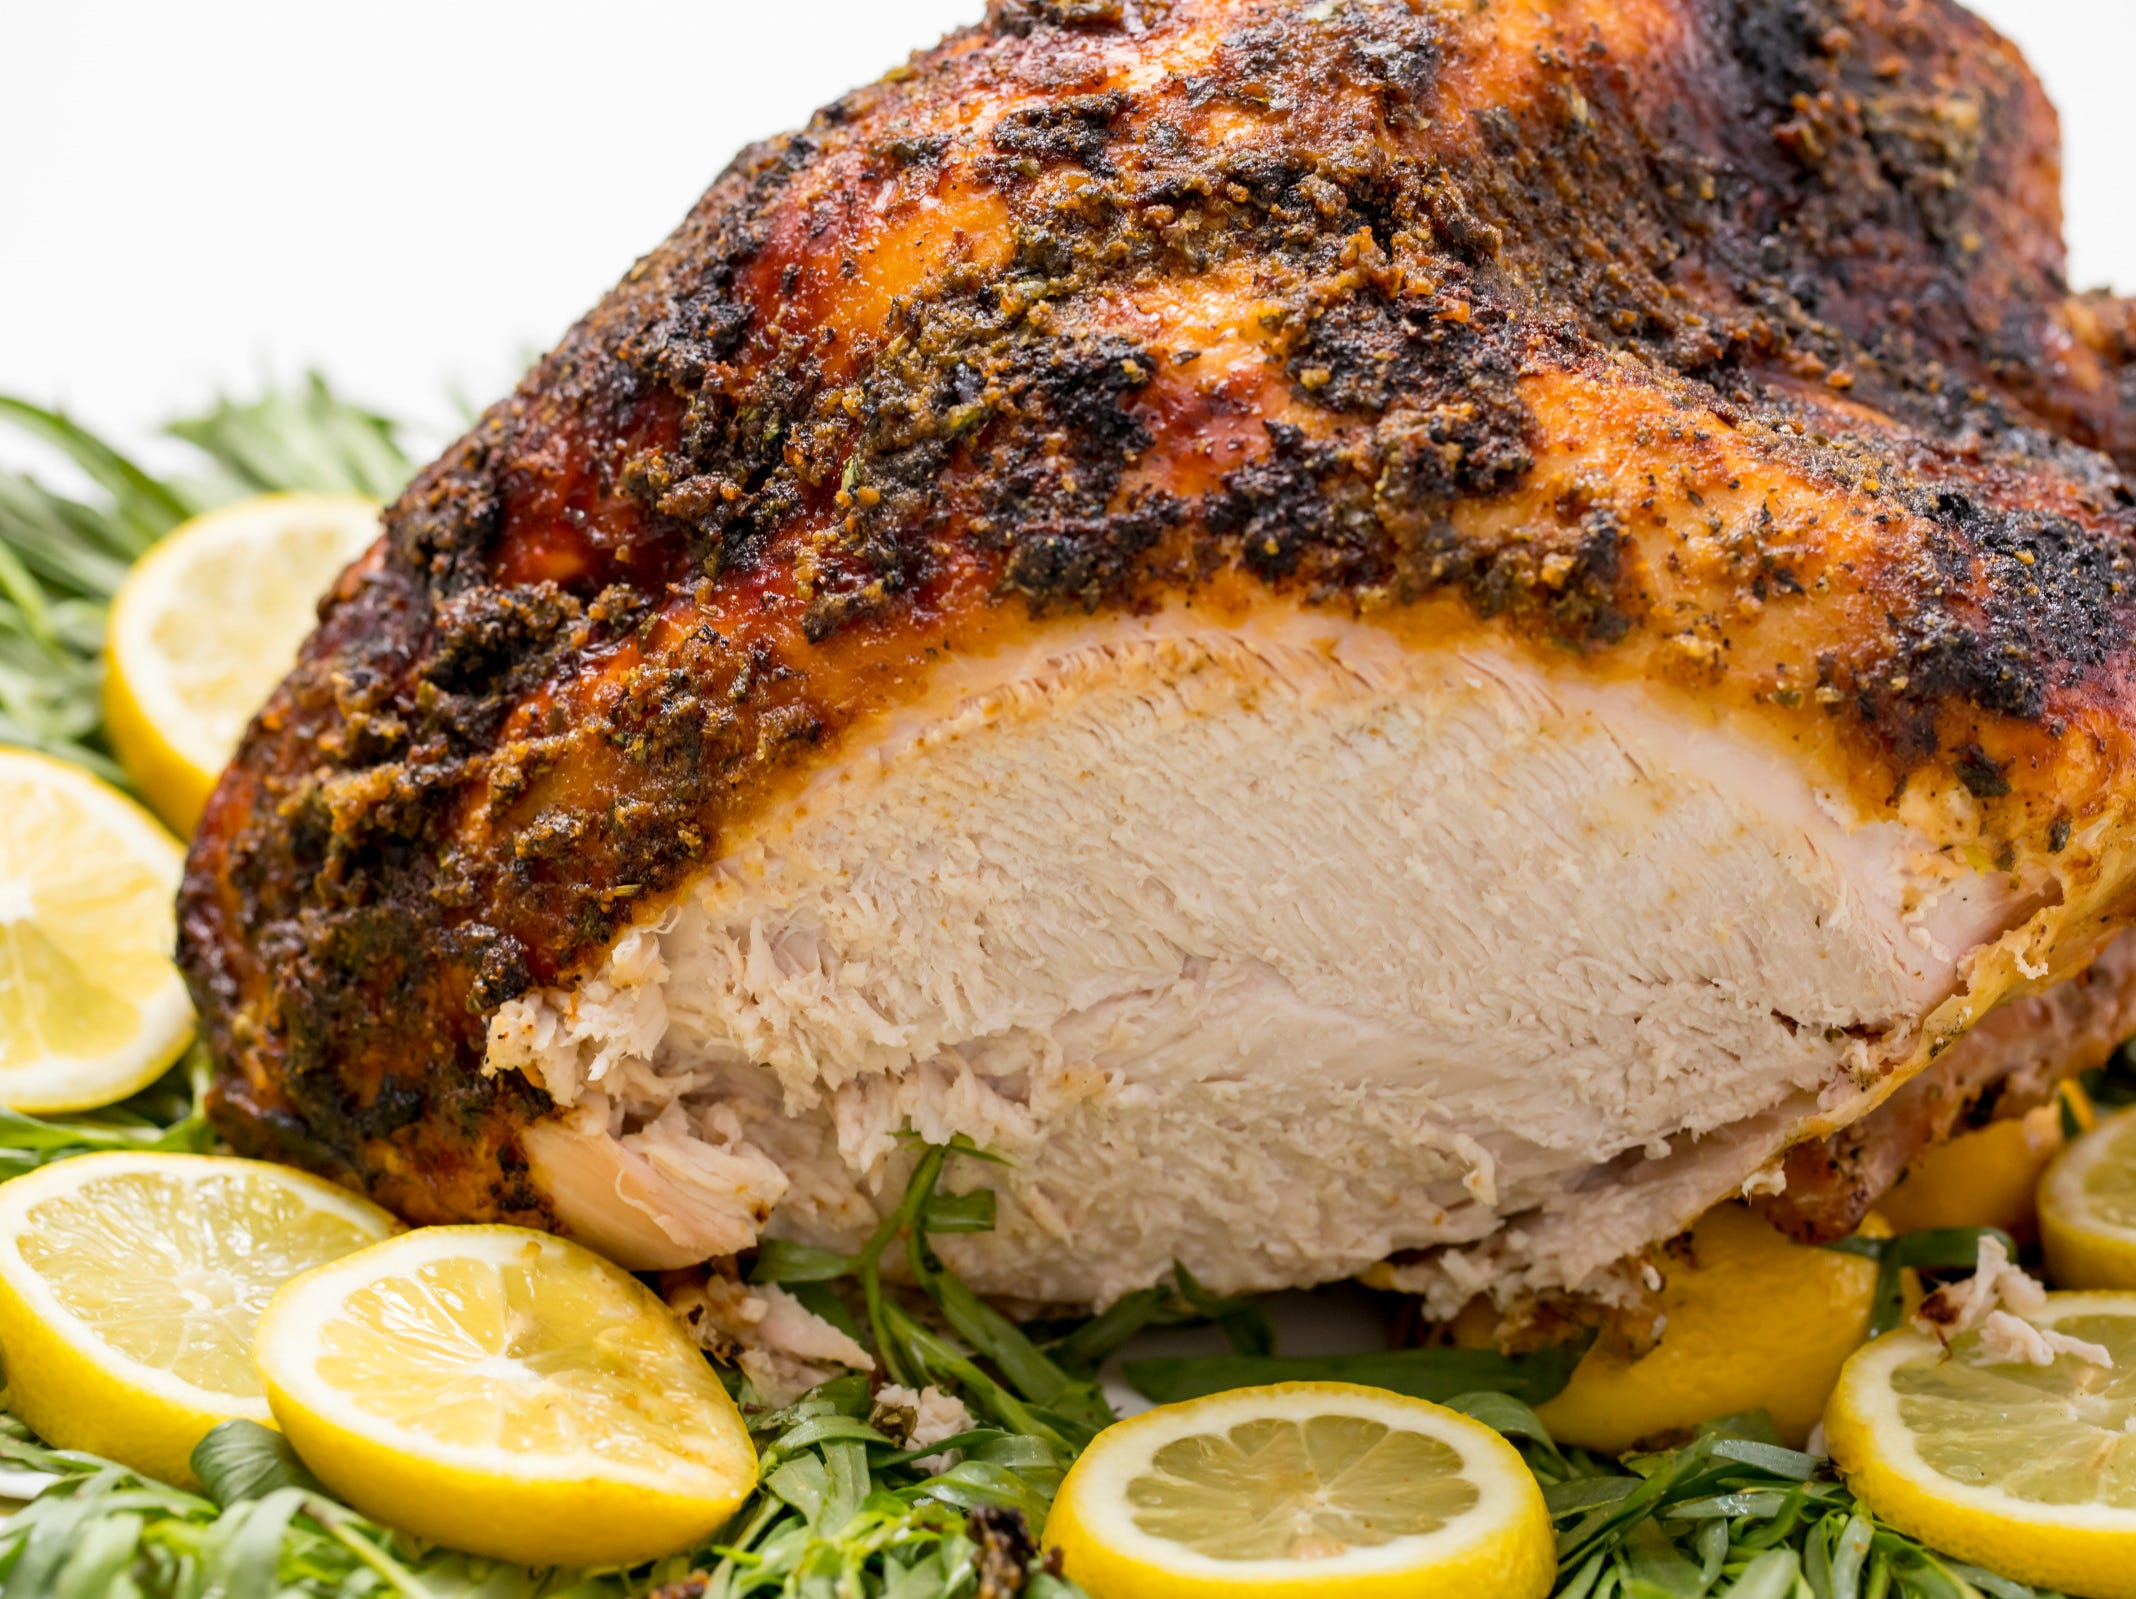 With so many reasons to cook up a turkey on any day, there's no need to wait all year long for that one special day — nor do you have to prepare a whole turkey. With this recipe, inspired by Cooking Outdoors, you can enjoy a tender, juicy grilled turkey breast anytime (Thanksgiving included!) with minimal effort.